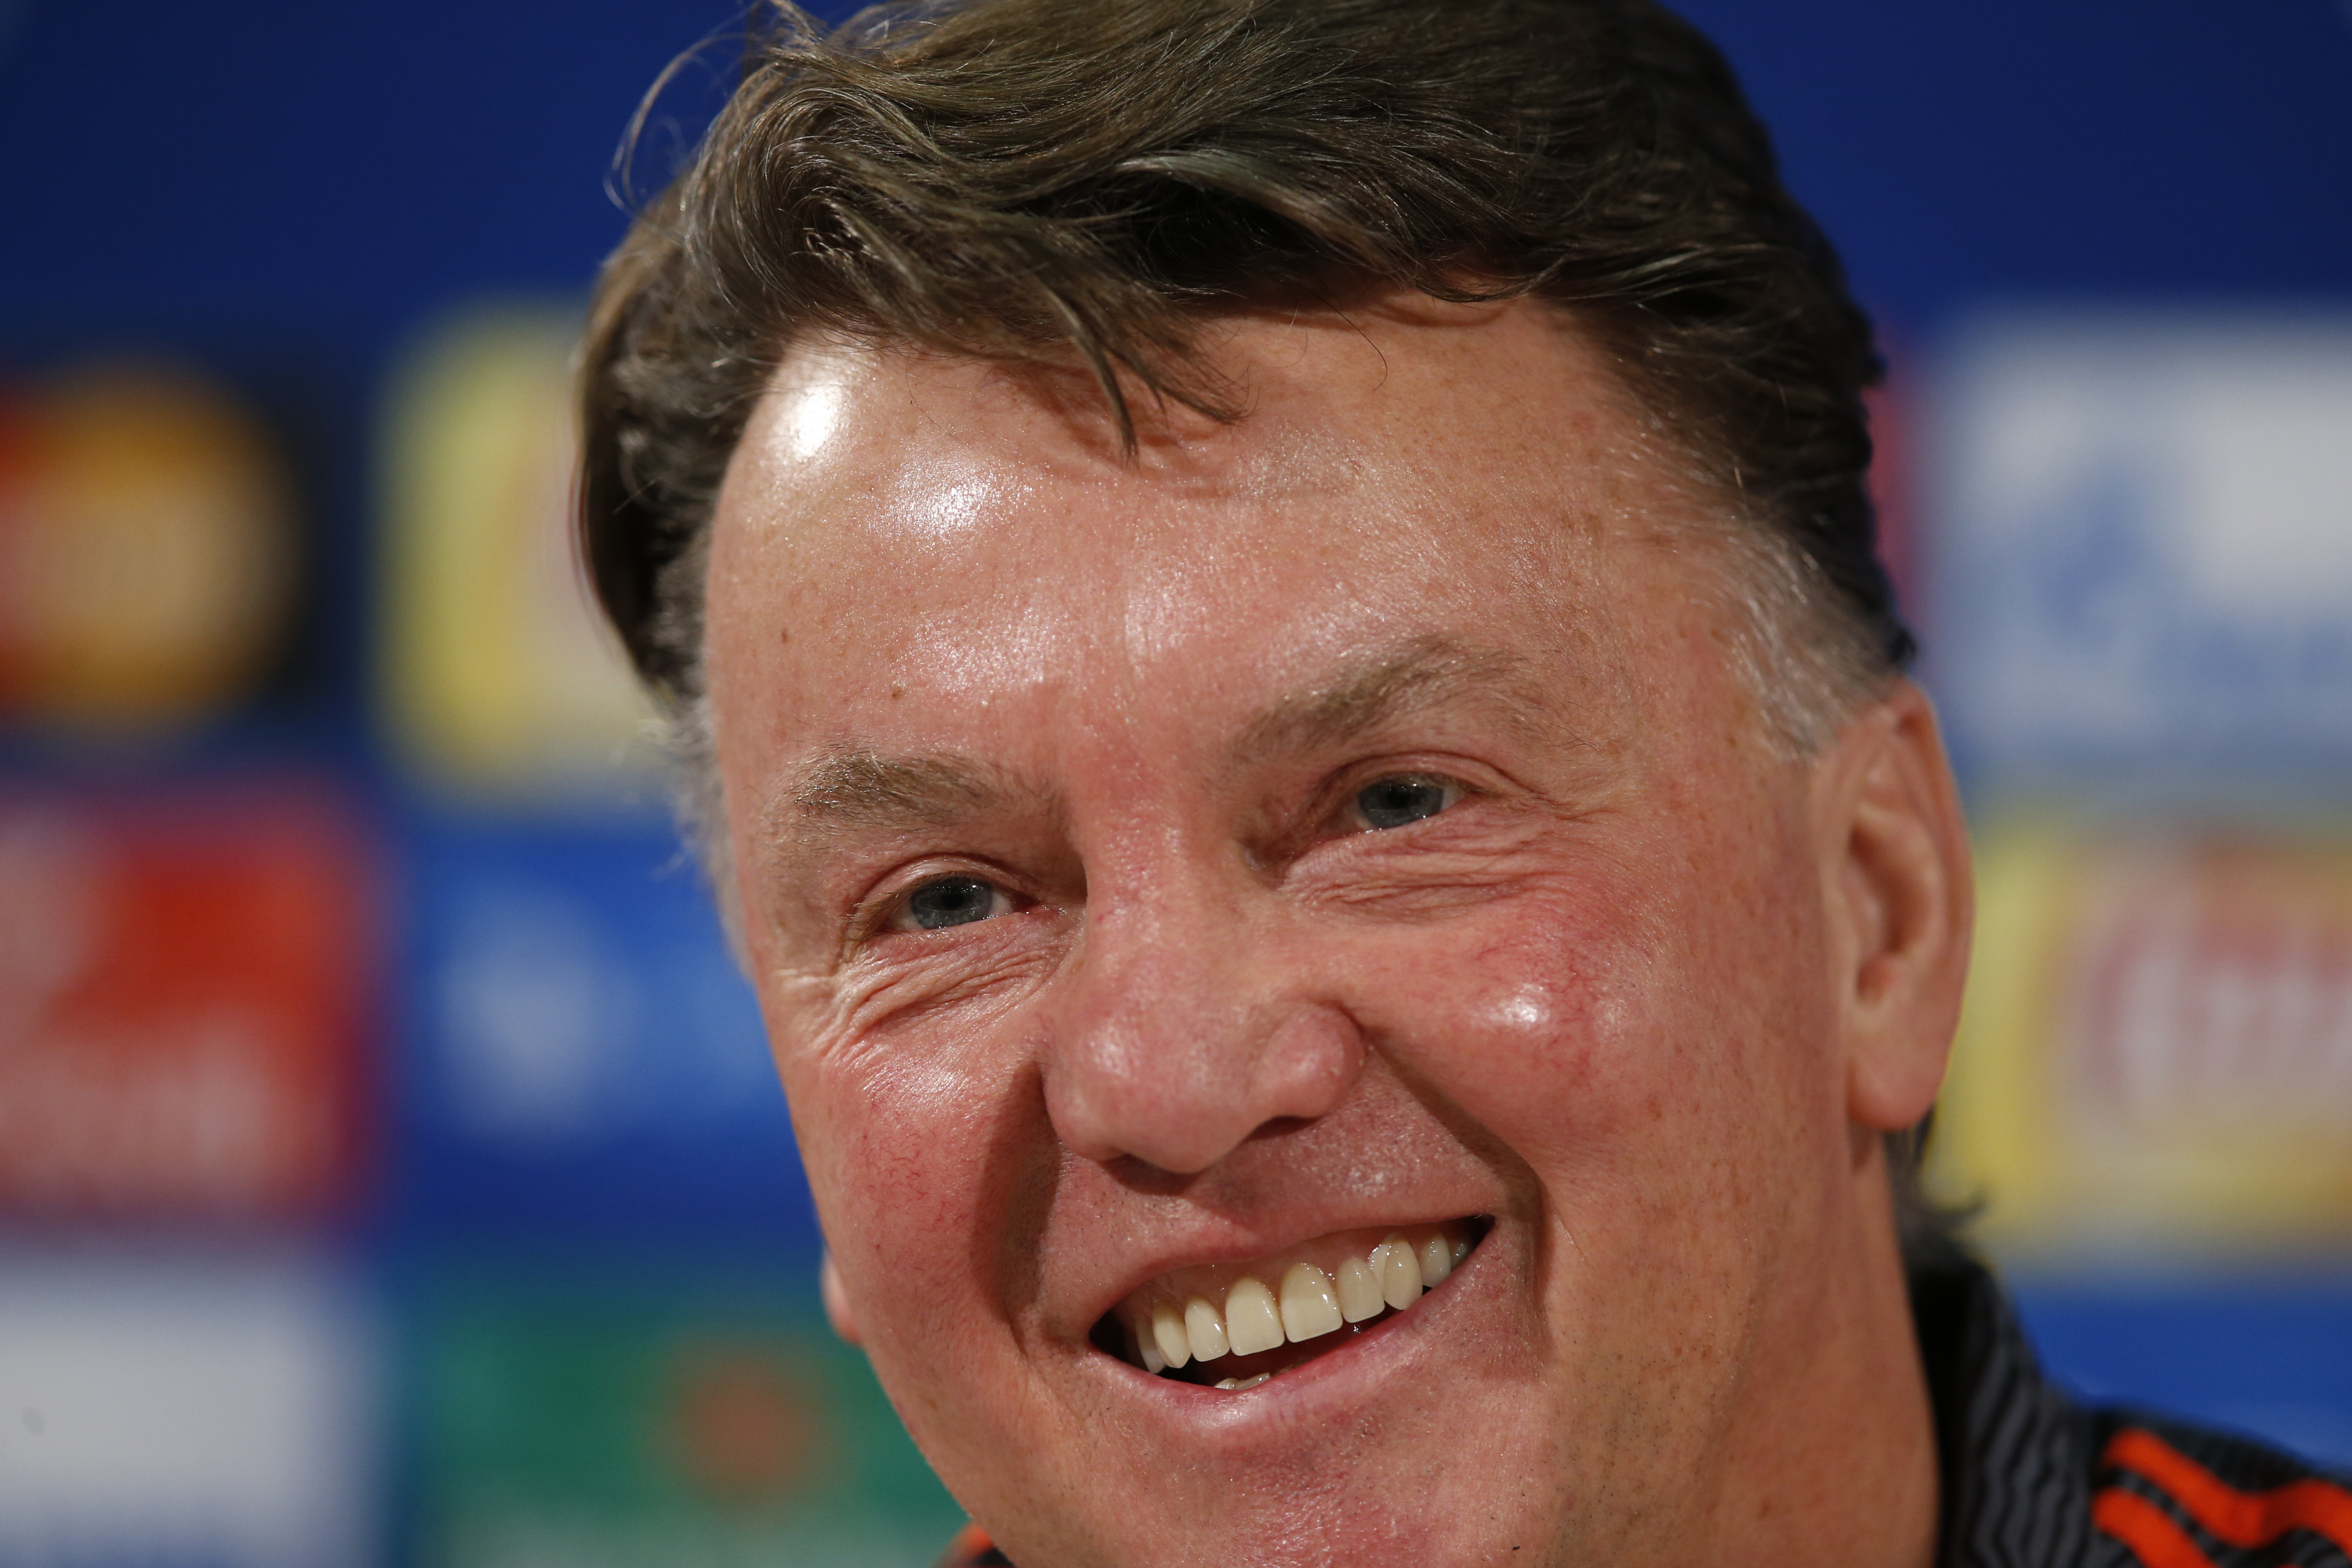 Manchester United's manager Louis van Gaal during the press conference at Wolfsburg on Tuesday, December 7, 2015. Photo: Reuters